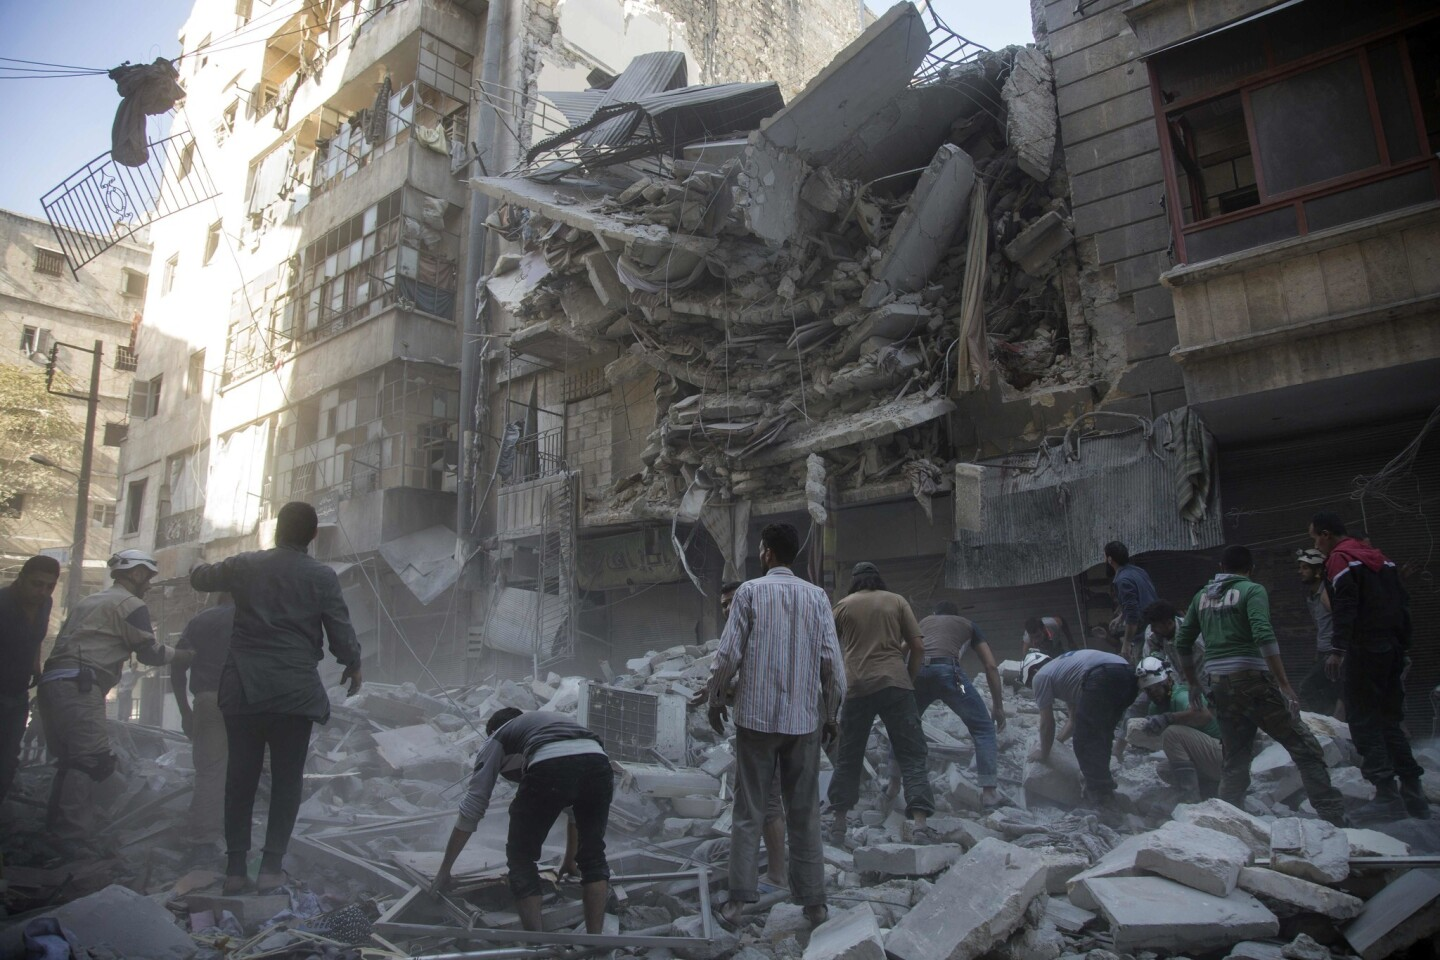 Syrian civilians gather after government airstrikes in the rebel-held Shaar neighborhood of Aleppo.